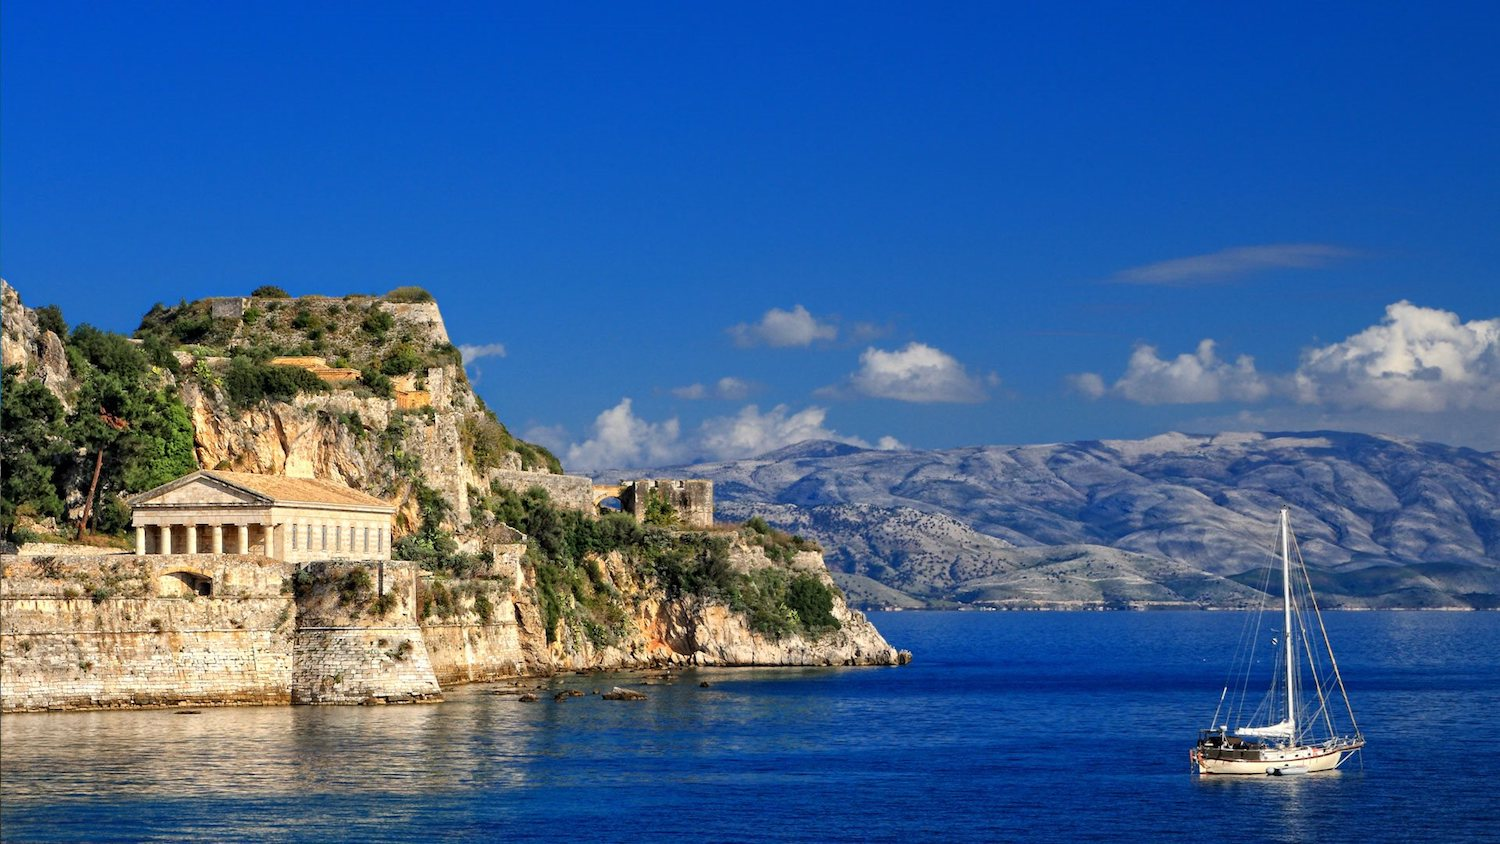 Yacht charter sailing in the blue waters of Corfu